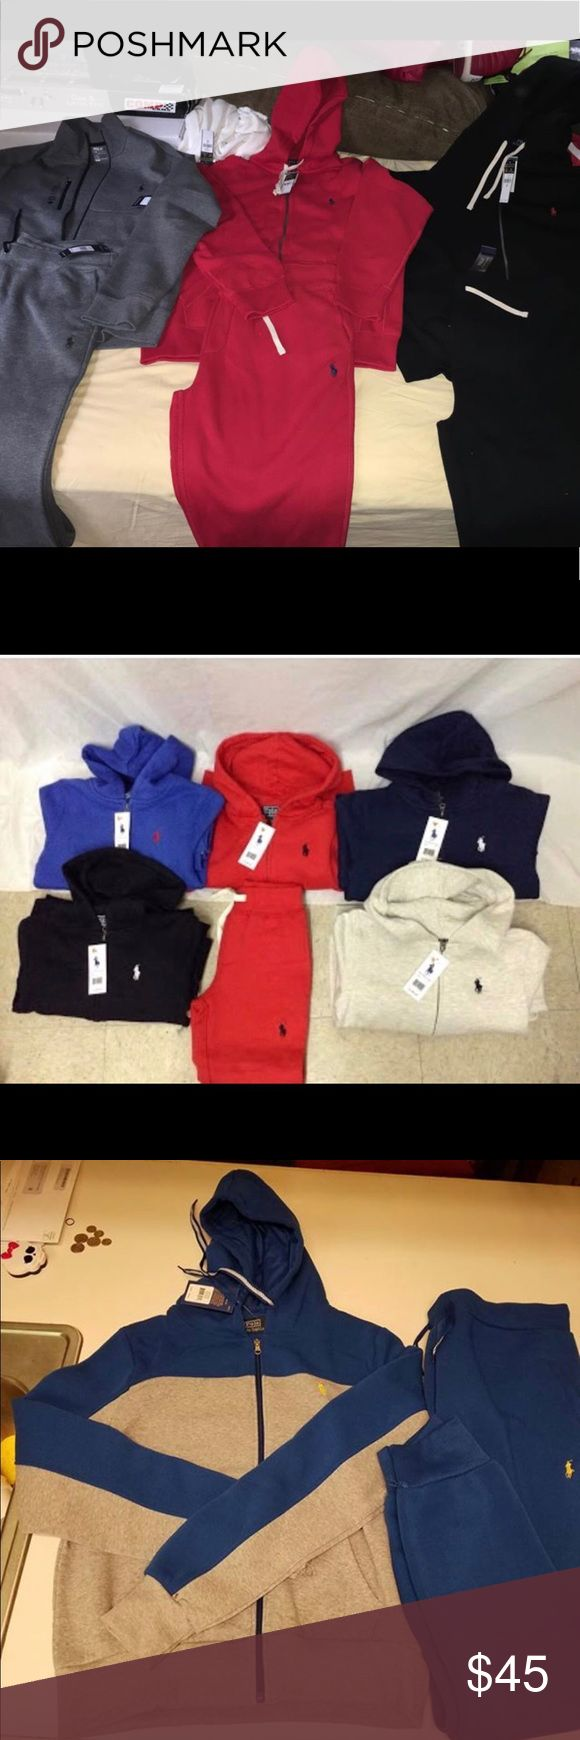 Baby and men and women polo Jumpsuits Brand new all sizes Polo by Ralph Lauren Other